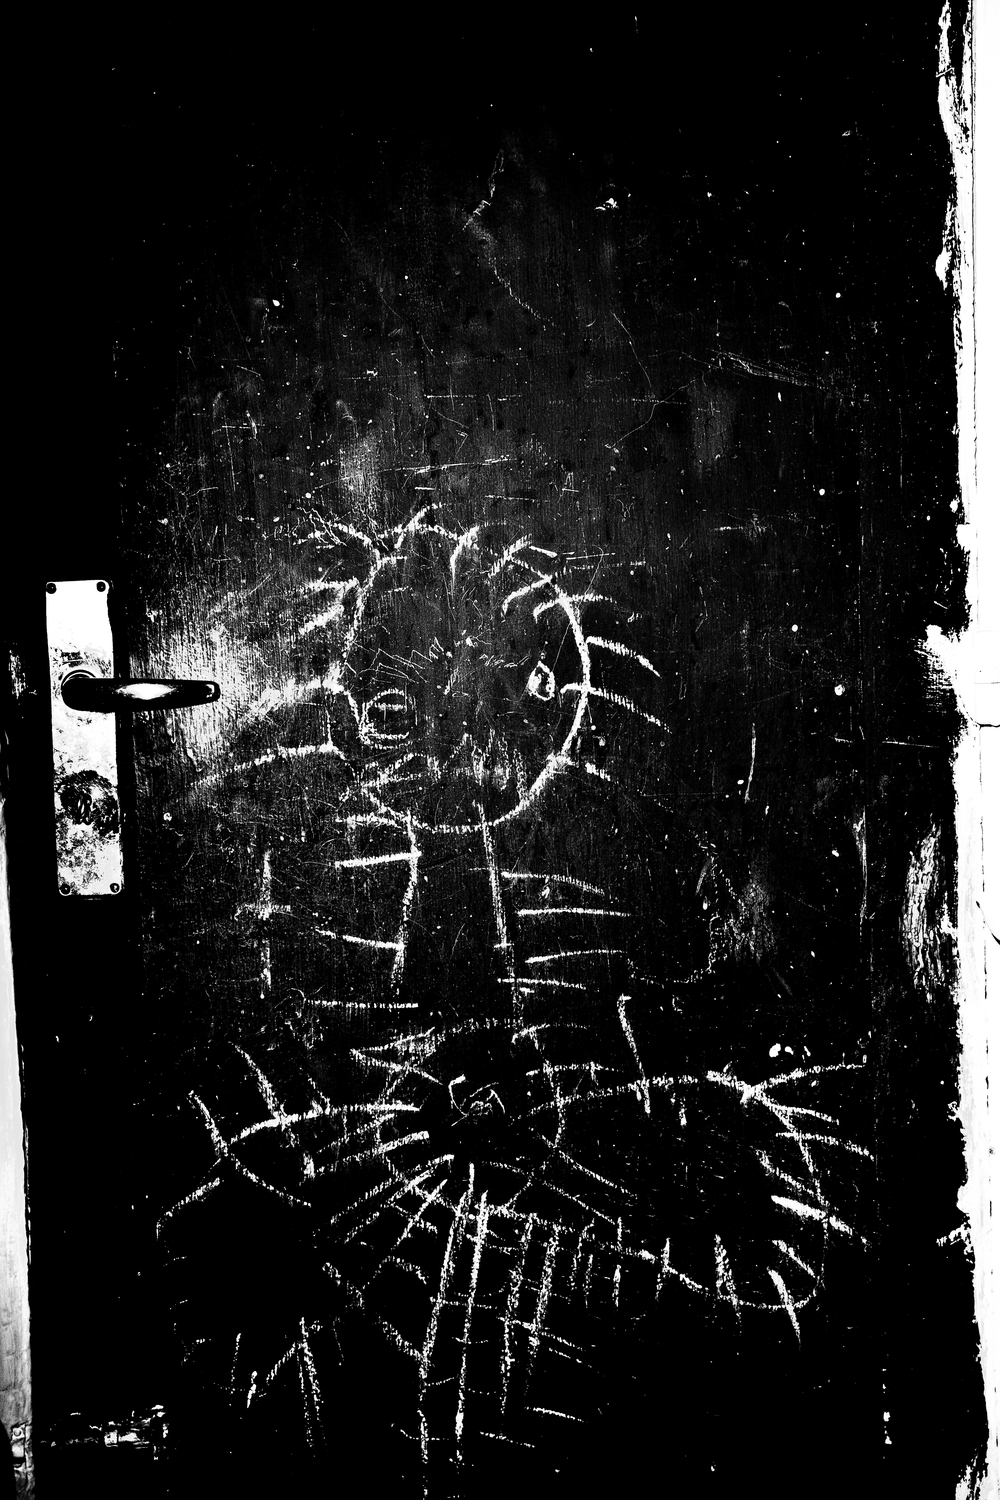 The door to the backstairs   Michelle Forchhammer''s son drew an ostrich in white chalk on the door, before he moved out of his childhood home. Today, he is grown up, but the drawing is still there. Every horizontal surface in the little home is occupied with objects - figurines, a ceramic crow, and a sword that belonged to the little boy.